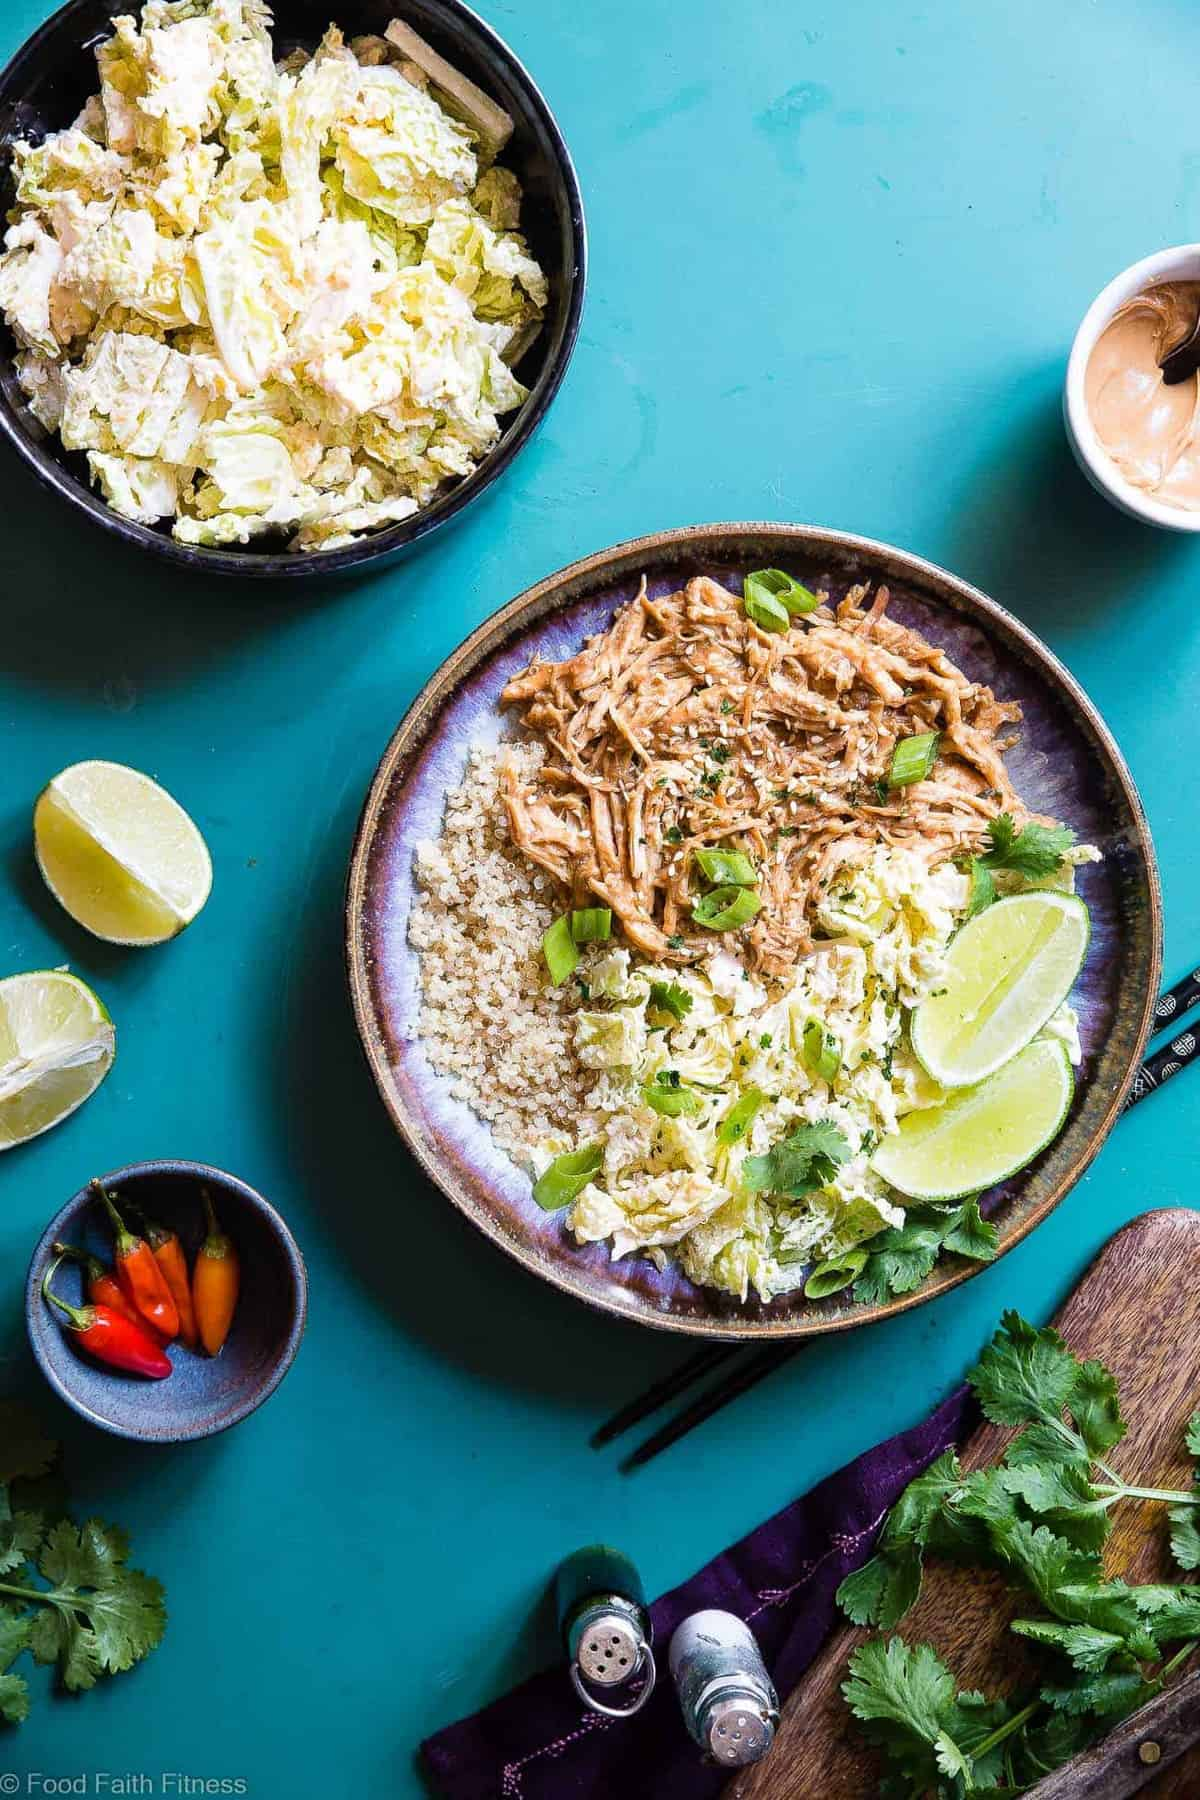 Slow Cooker Thai Peanut Butter Chicken Quinoa Bowls -CREAMY crockpot Thai peanut chicken ismixed with quinoa and a spicy cabbage slaw to make a family friendly, gluten free and healthy meal! Theslow cooker does the work for you! | #Foodfaithfitness | #Glutenfree #Dairyfree #Healthy #Slowcooker #Crockpot